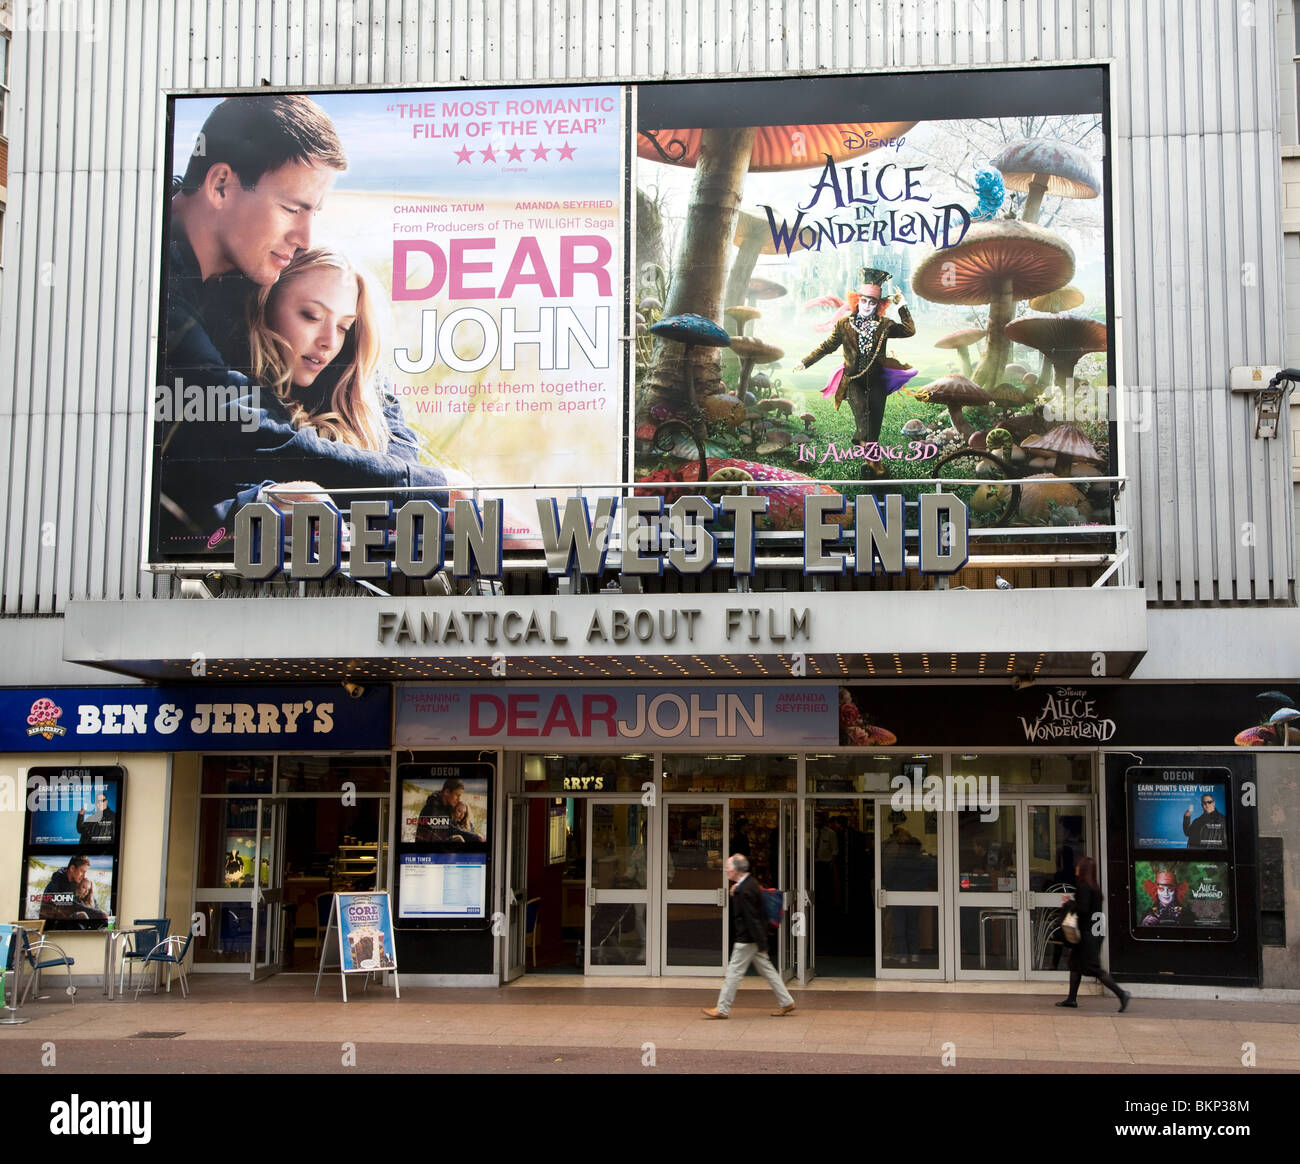 Odeon West End cinema, Leicester Square, London, England - Stock Image